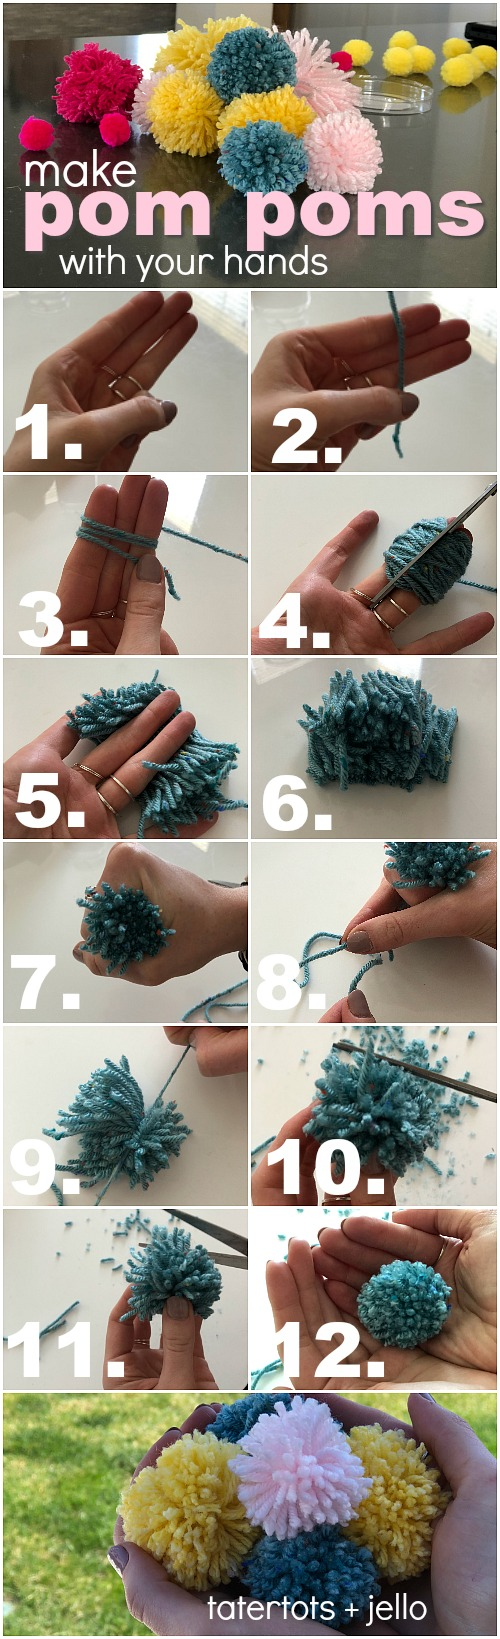 How to make beaded boho pom pom tassels. Make a tassel for a shelf, a doorknob, embellish a present or a picnic basket. You can make pom poms with yarn and your hands. A beaded boho tassel also makes a wonderful gift idea!